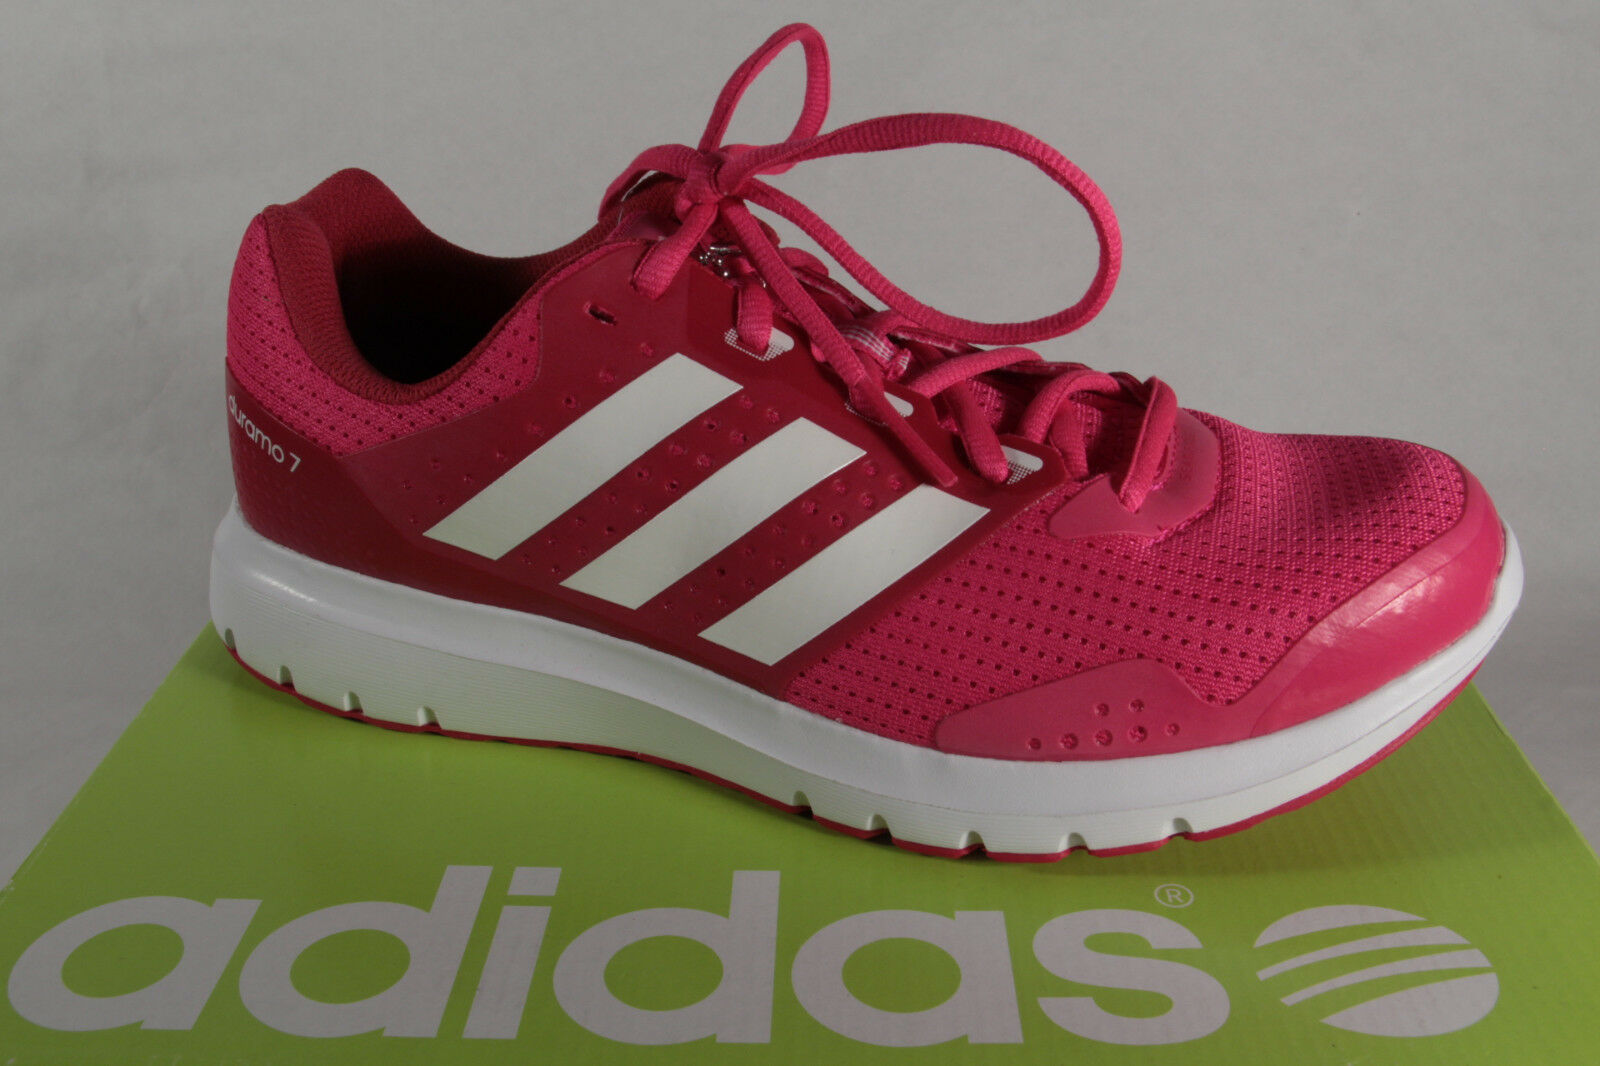 Adidas Duramo  7 Pink Trainers AQ6502  low prices